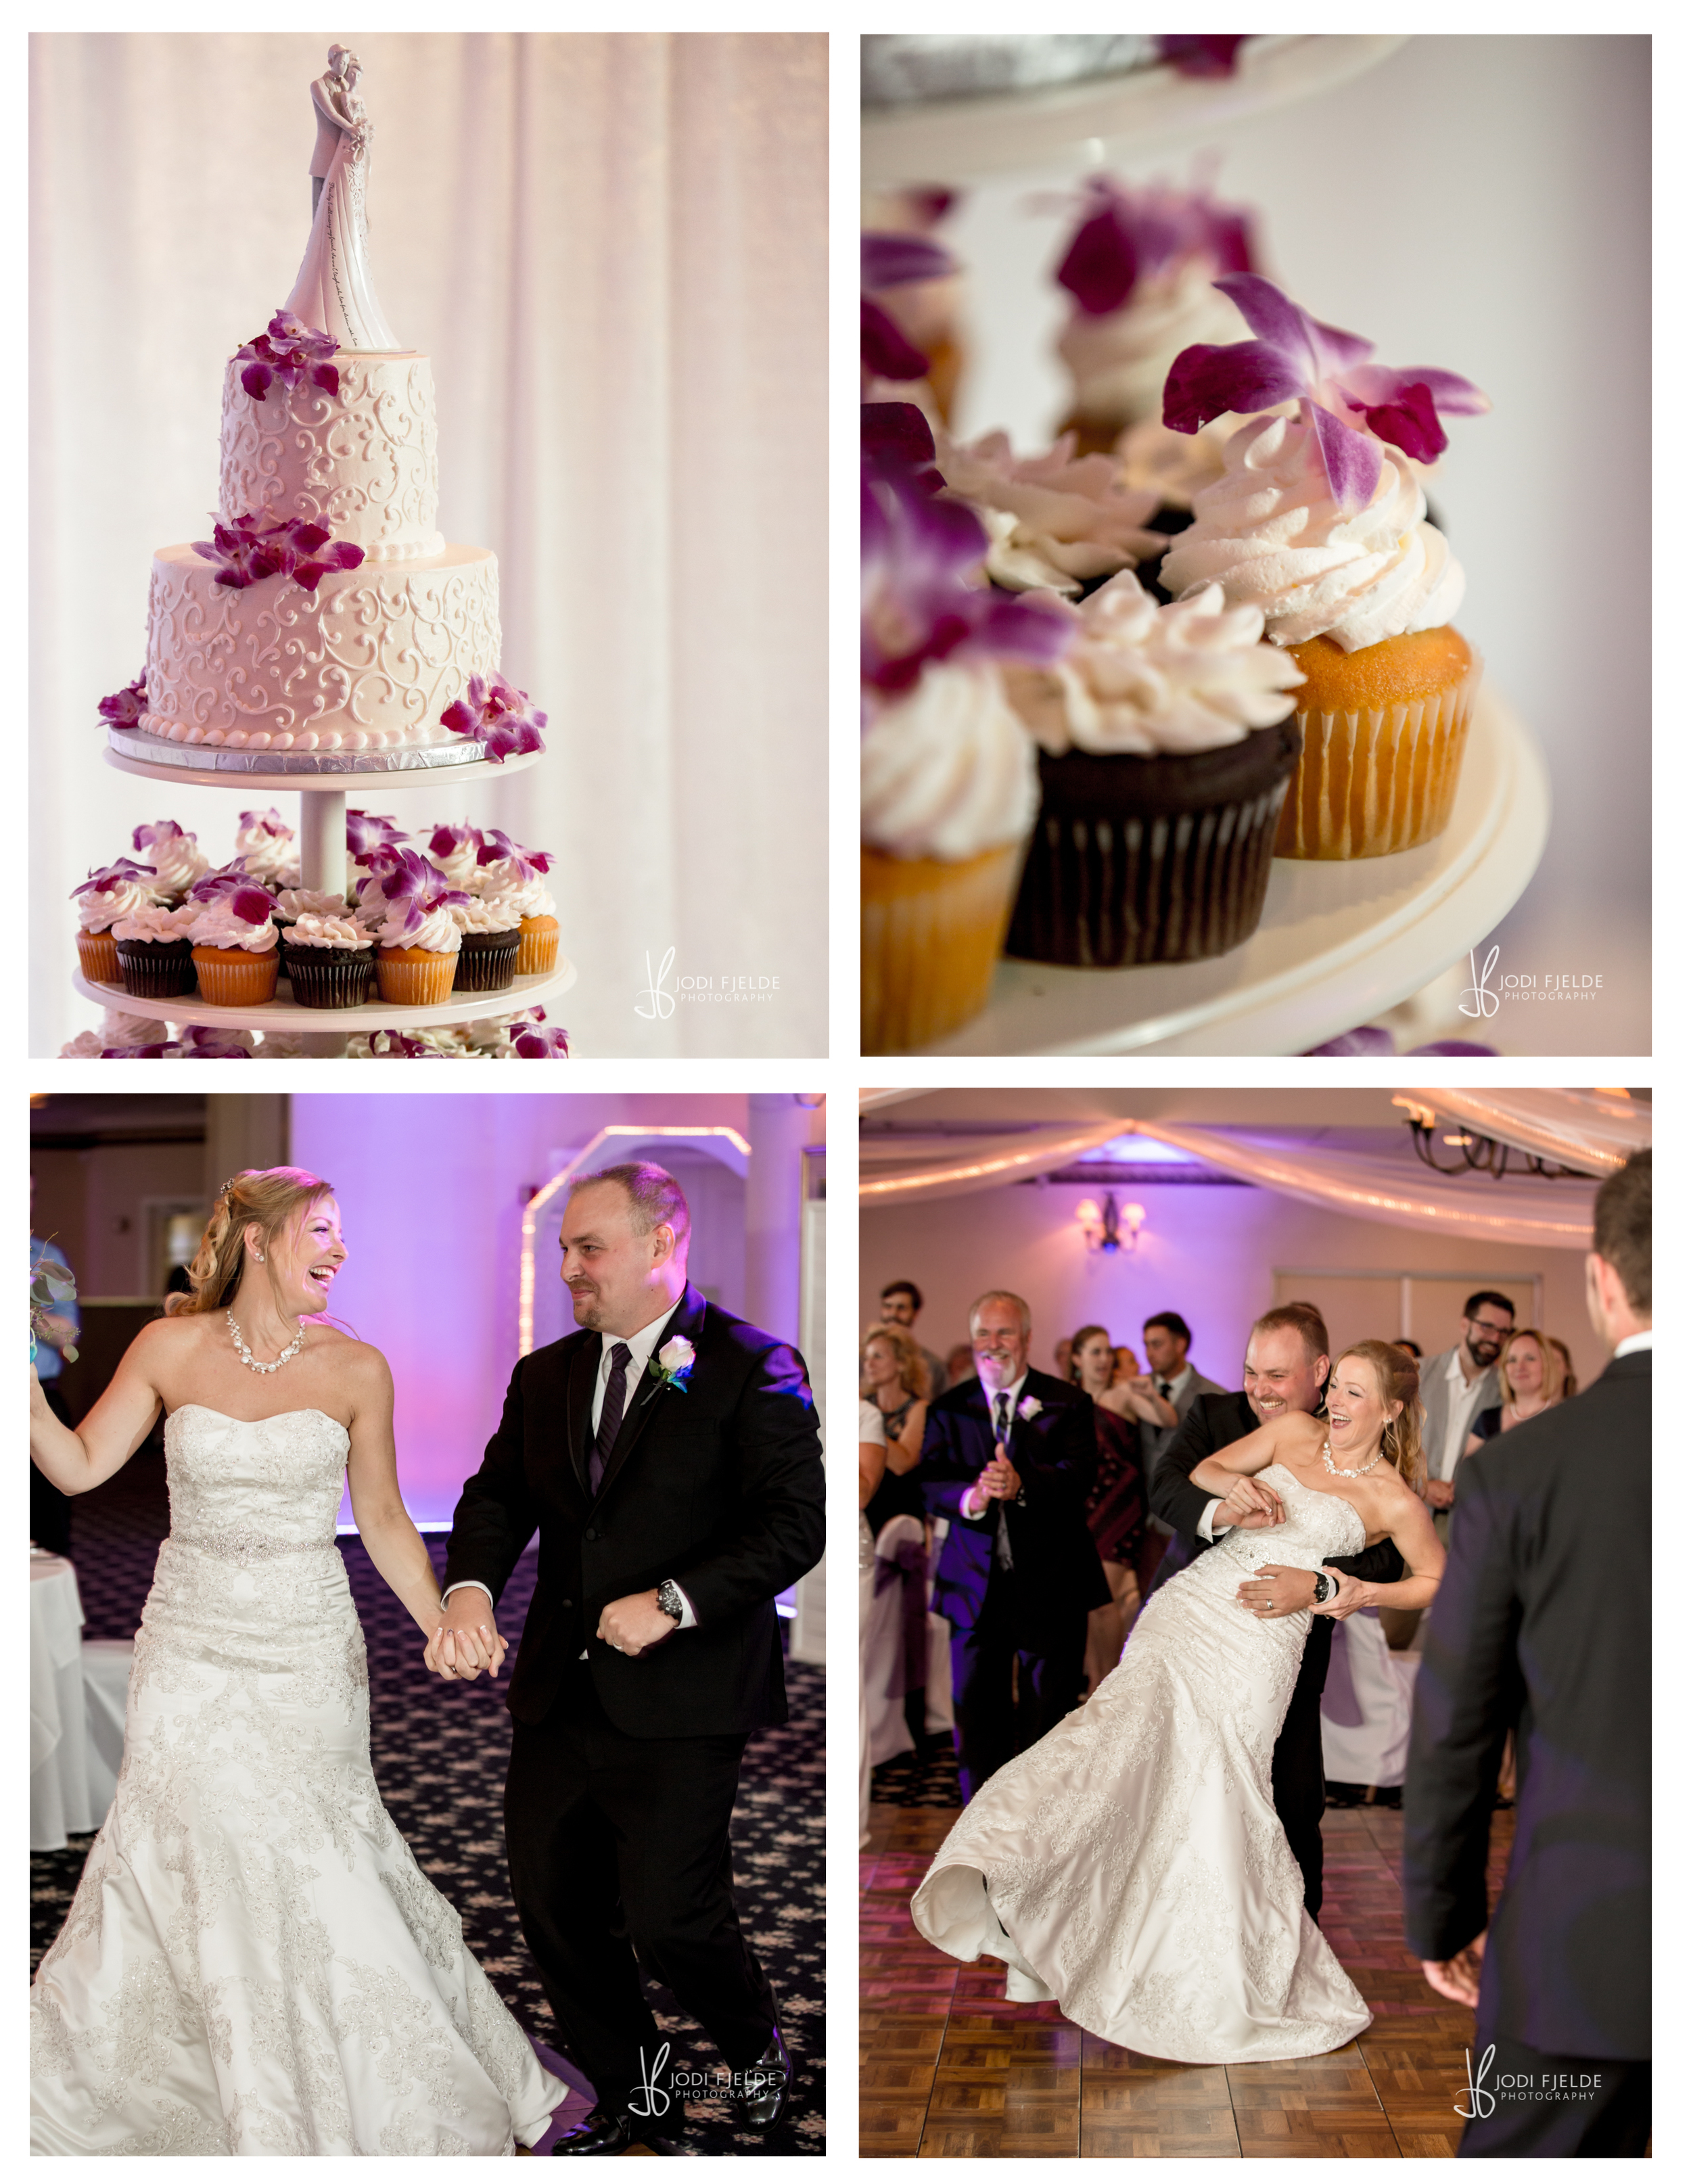 Morikami_Delray_Beach_Golf_Club_Wedding_Jenna & Brian 24.jpg